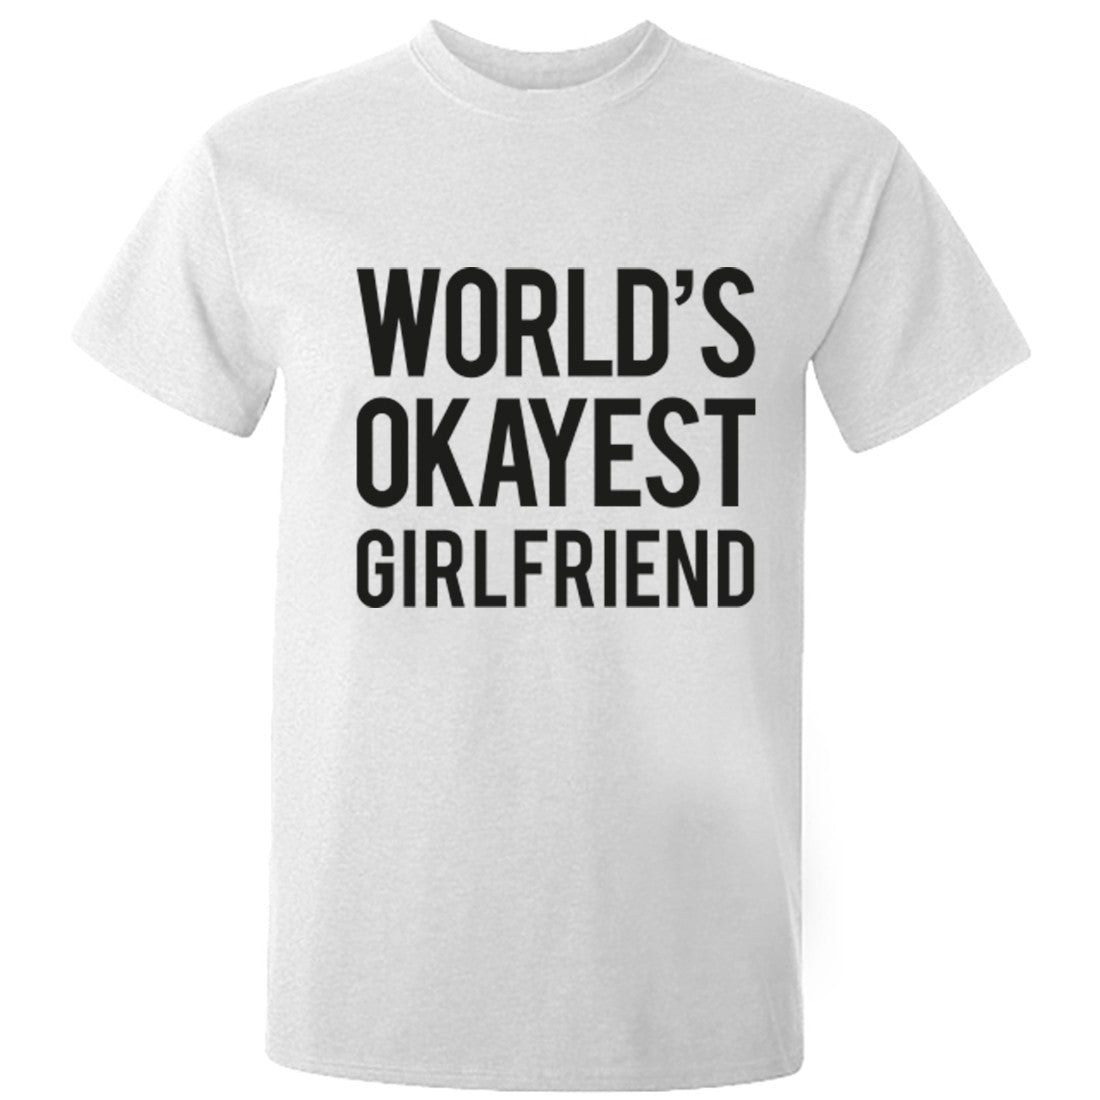 Worlds Okayest Girlfriend Unisex Fit T-Shirt K0482 - Illustrated Identity Ltd.